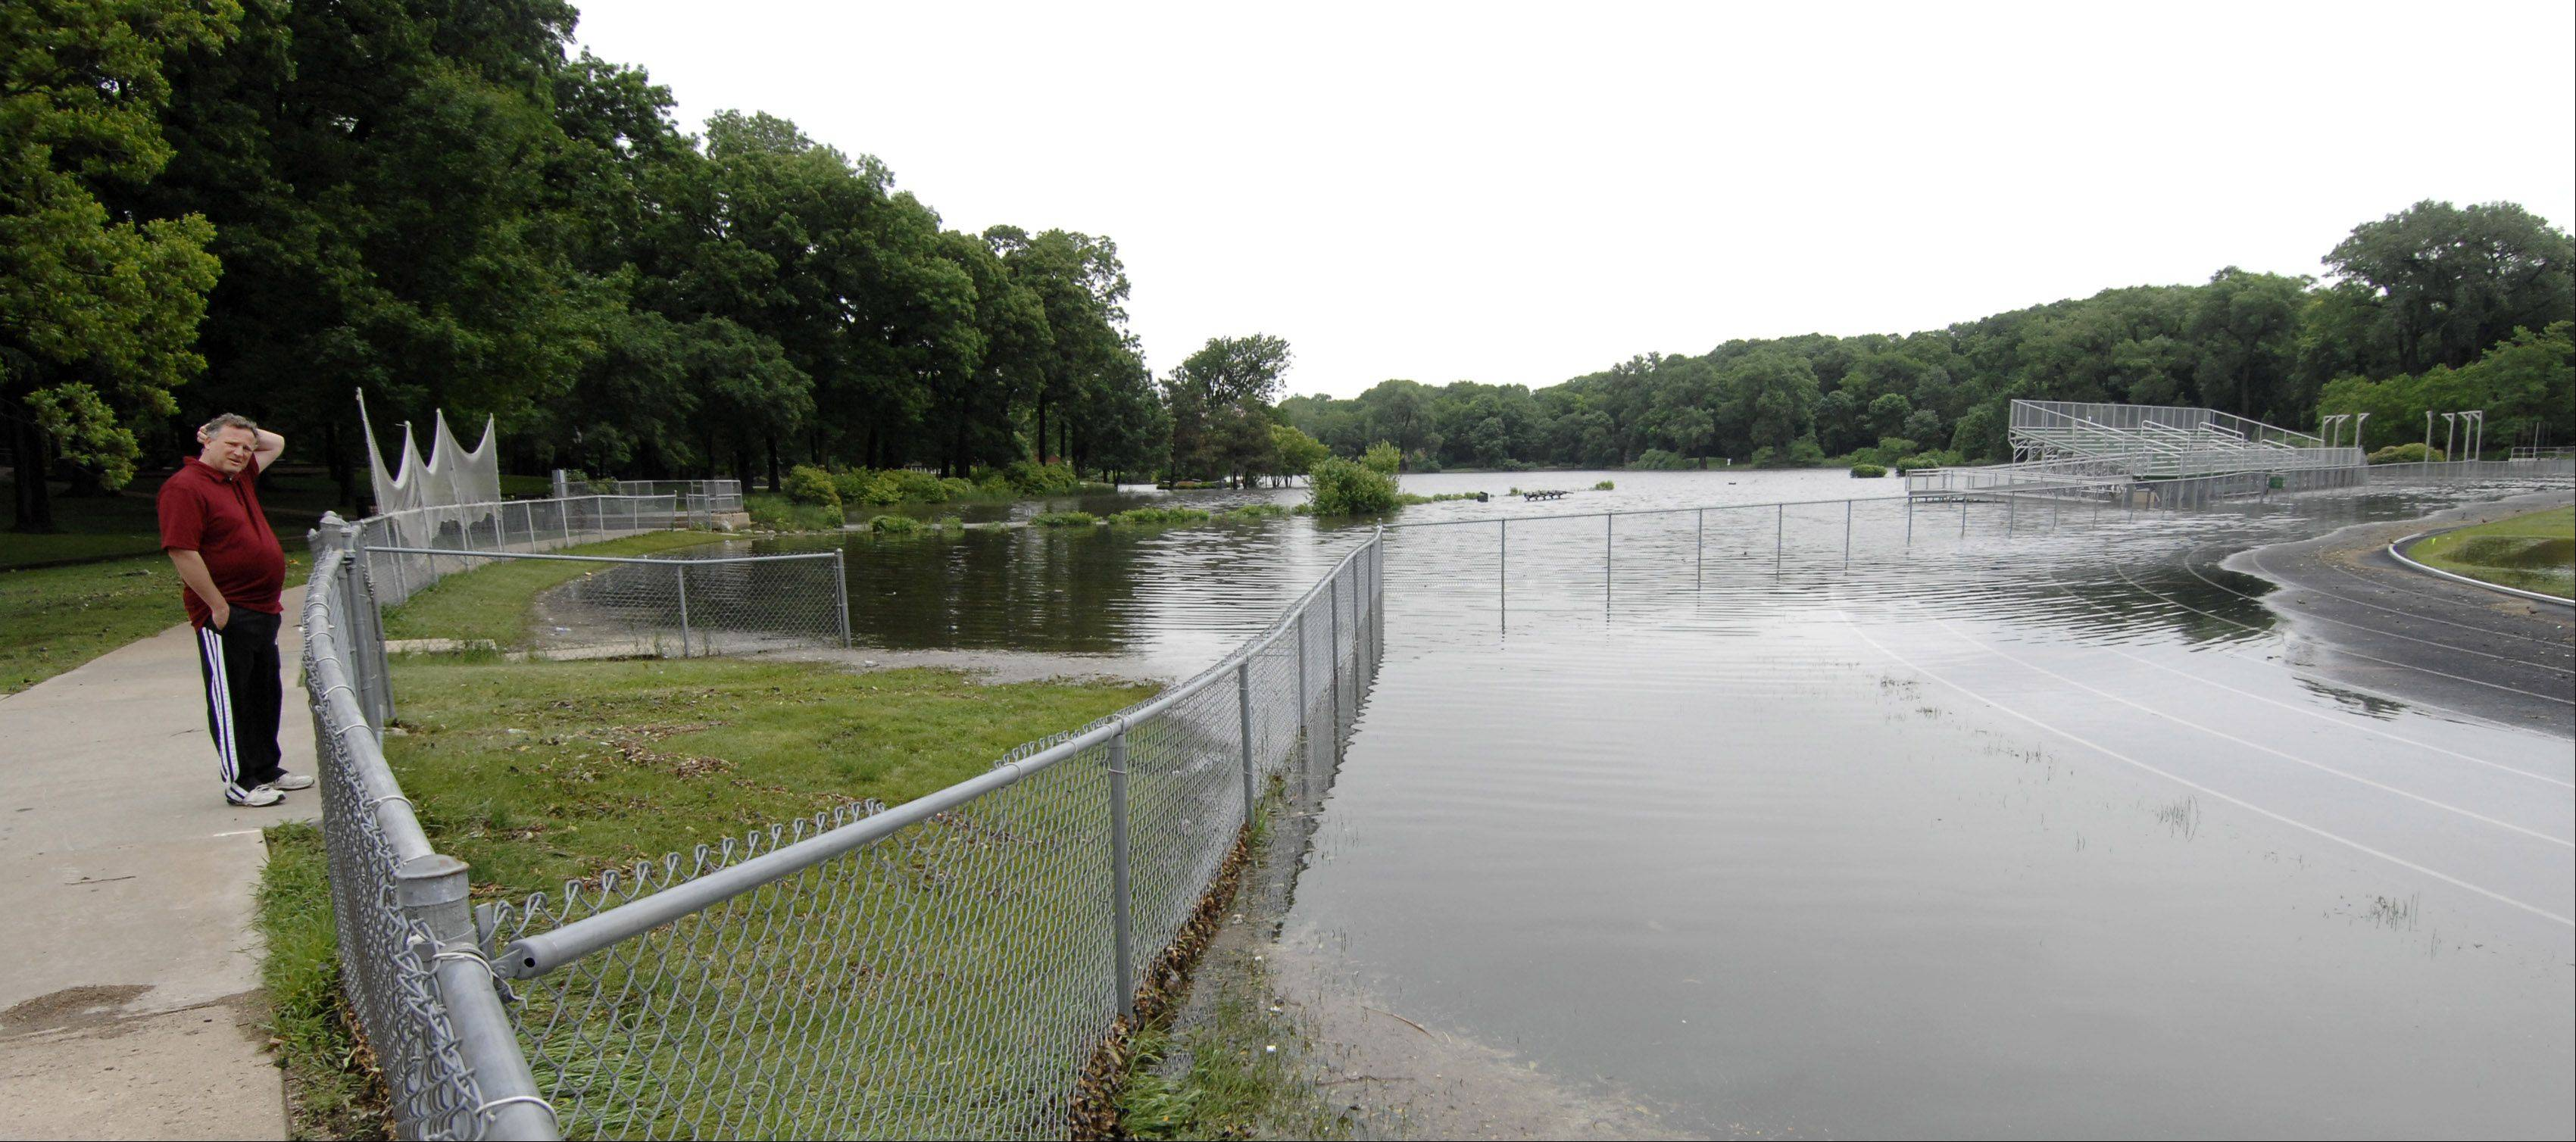 Changes will be made to a structure at Lake Ellyn to reduce the possibility of flooding during major storm events.